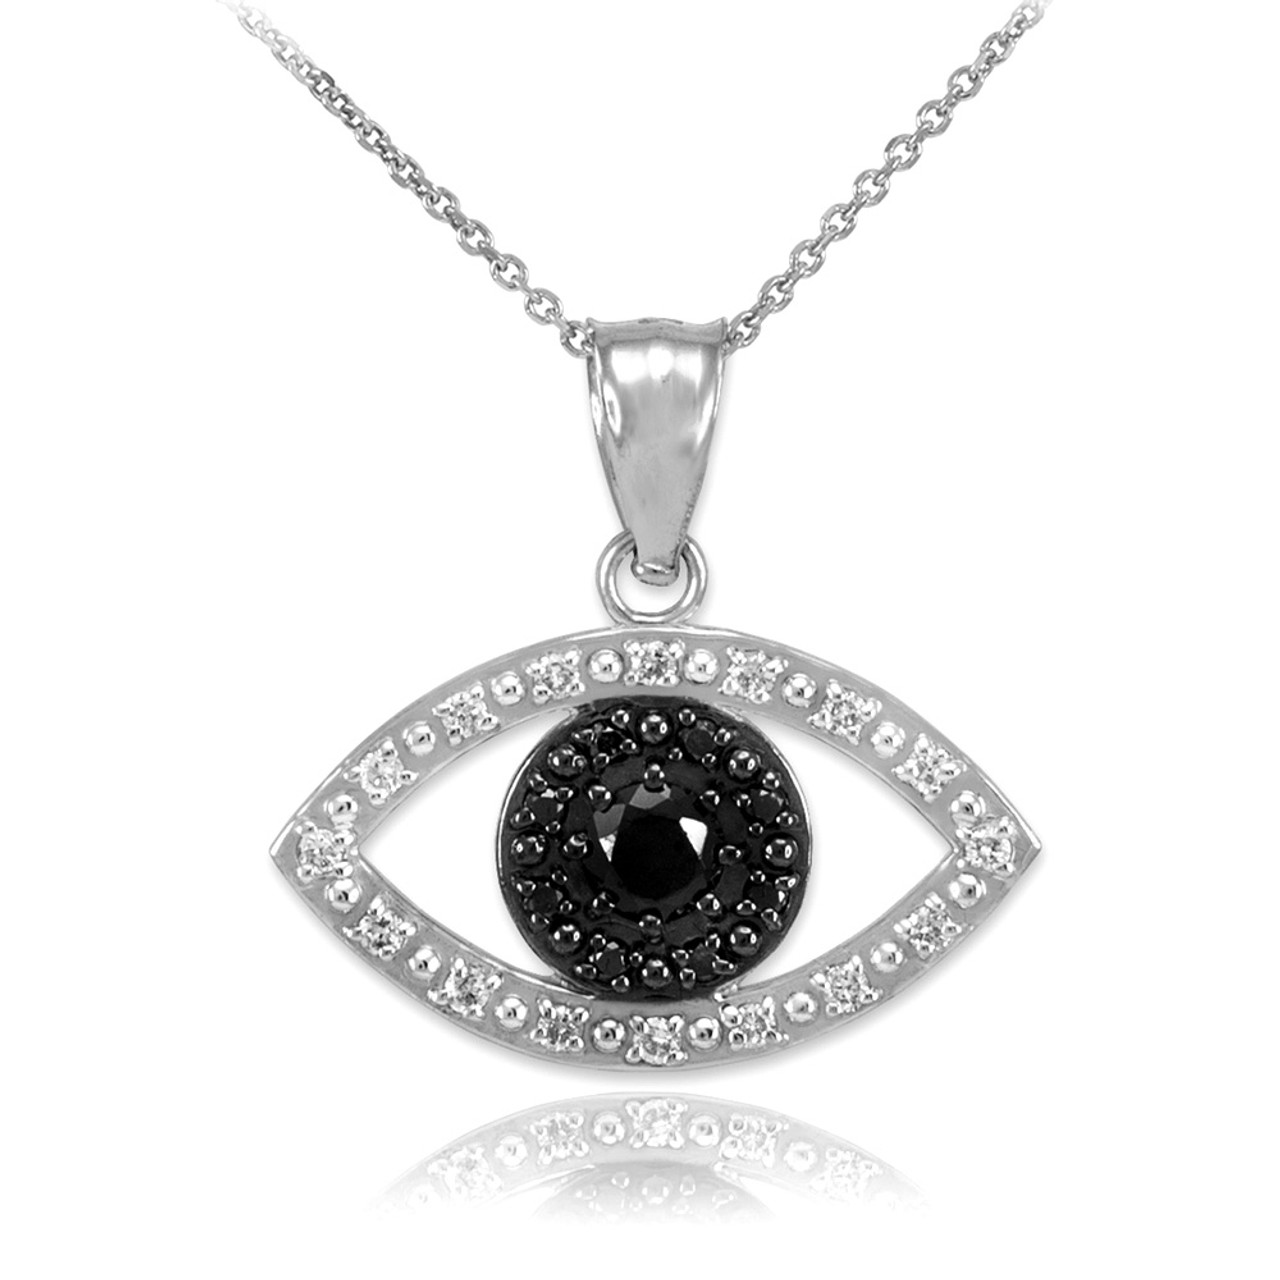 White gold evil eye pendant with clear and black diamonds white gold evil eye pendant necklace with clear and black diamonds aloadofball Images